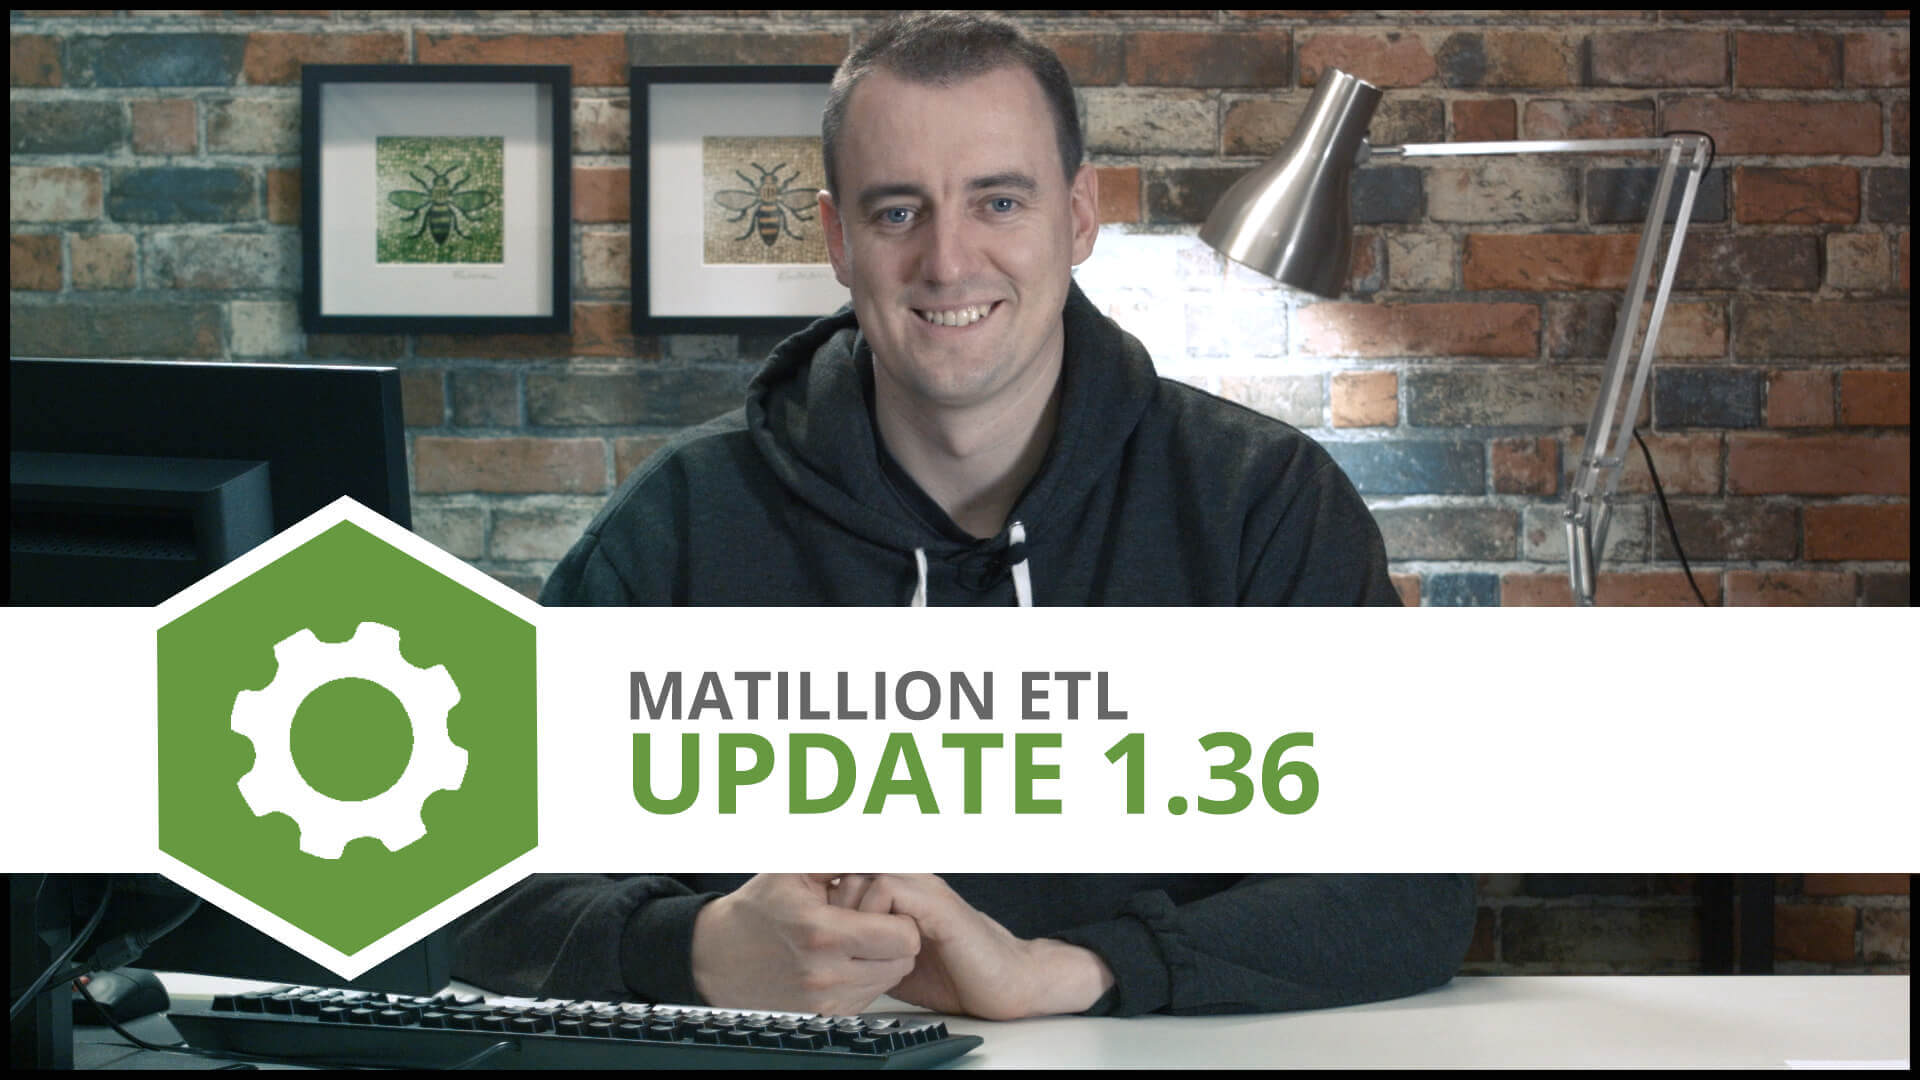 Update 1.36 | Matillion ETL